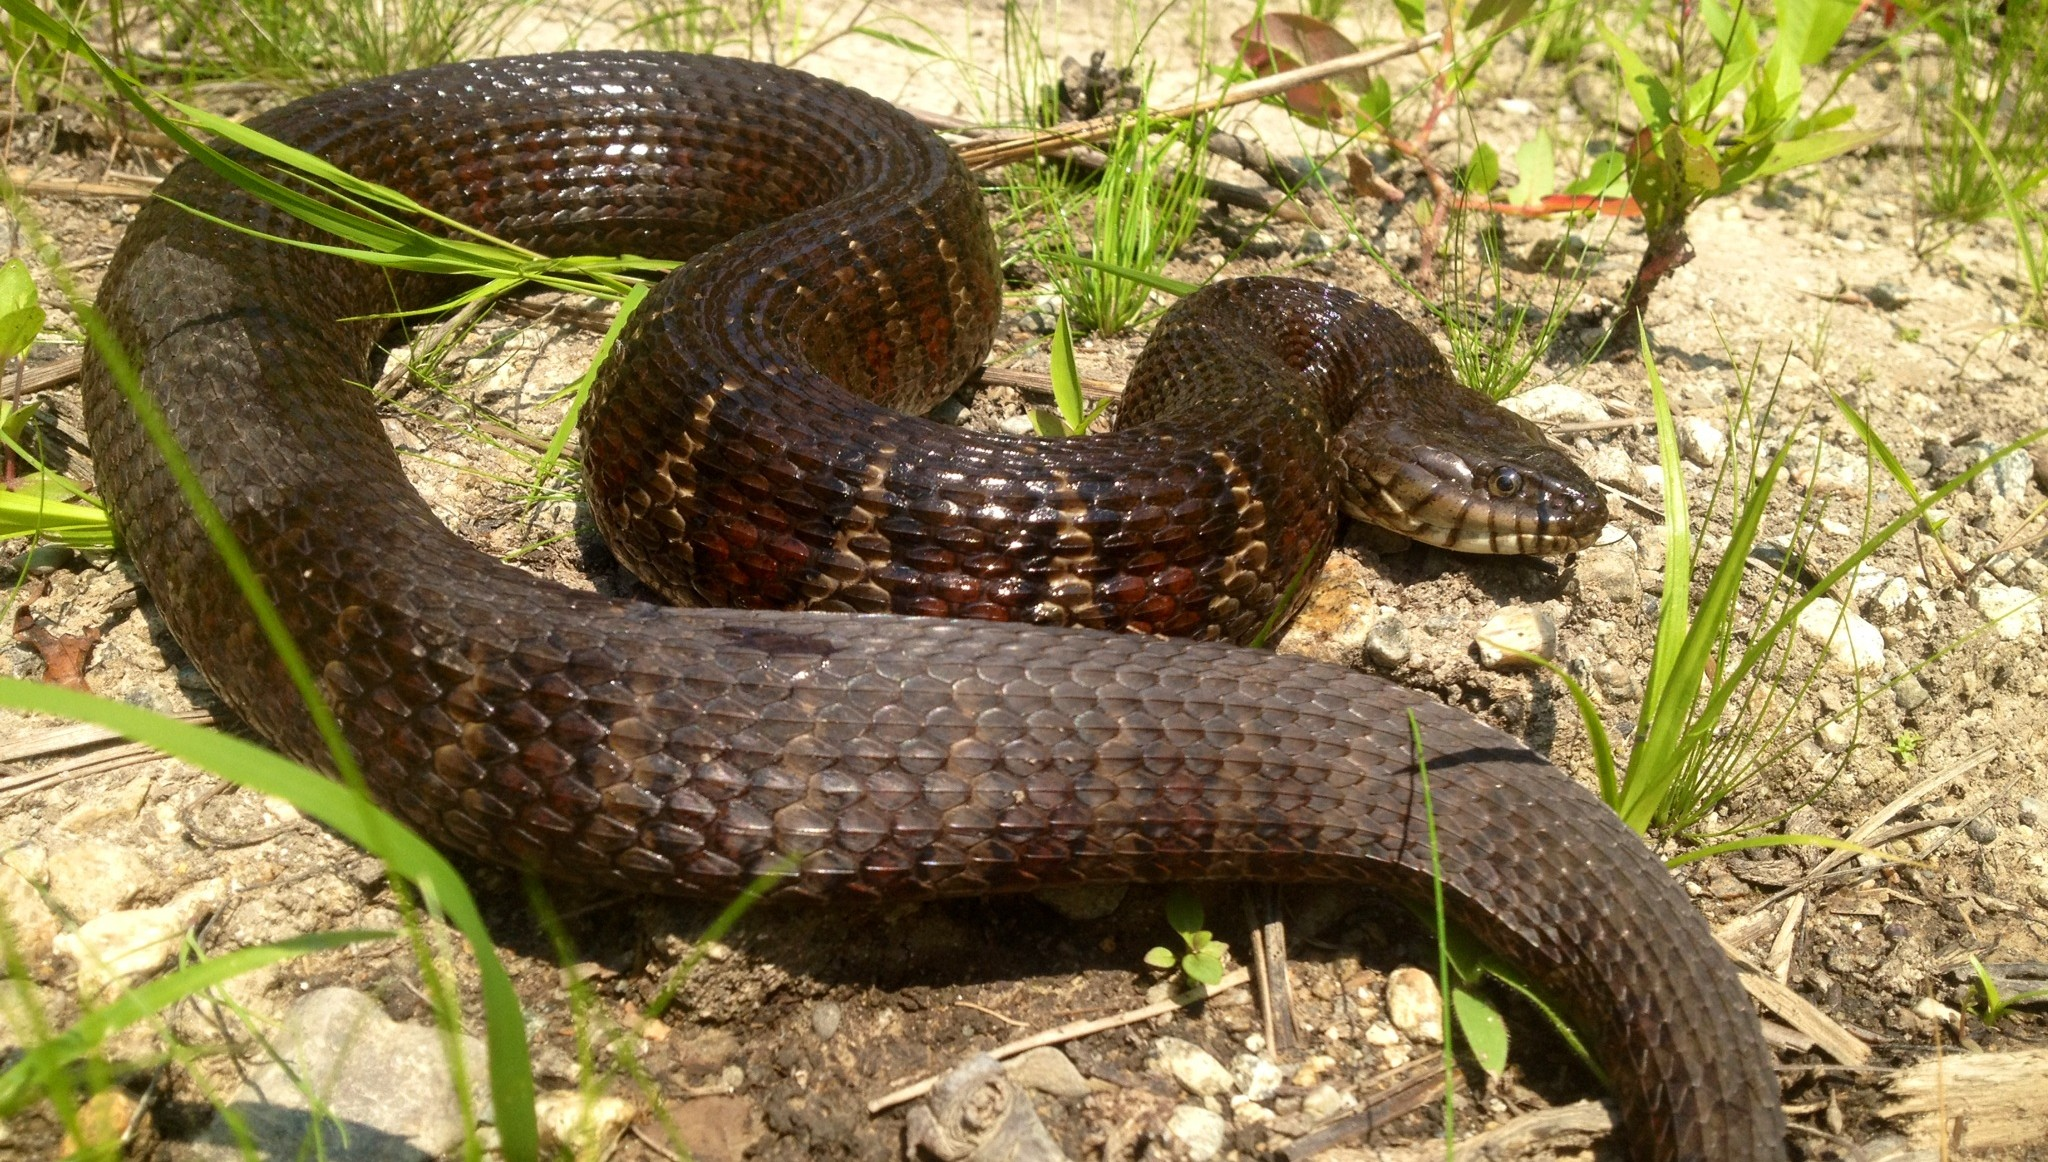 The common water snake and southern water snake are characterized by dark cross bands, which the native garter snake lacks. (OJ Miano/UC Davis)